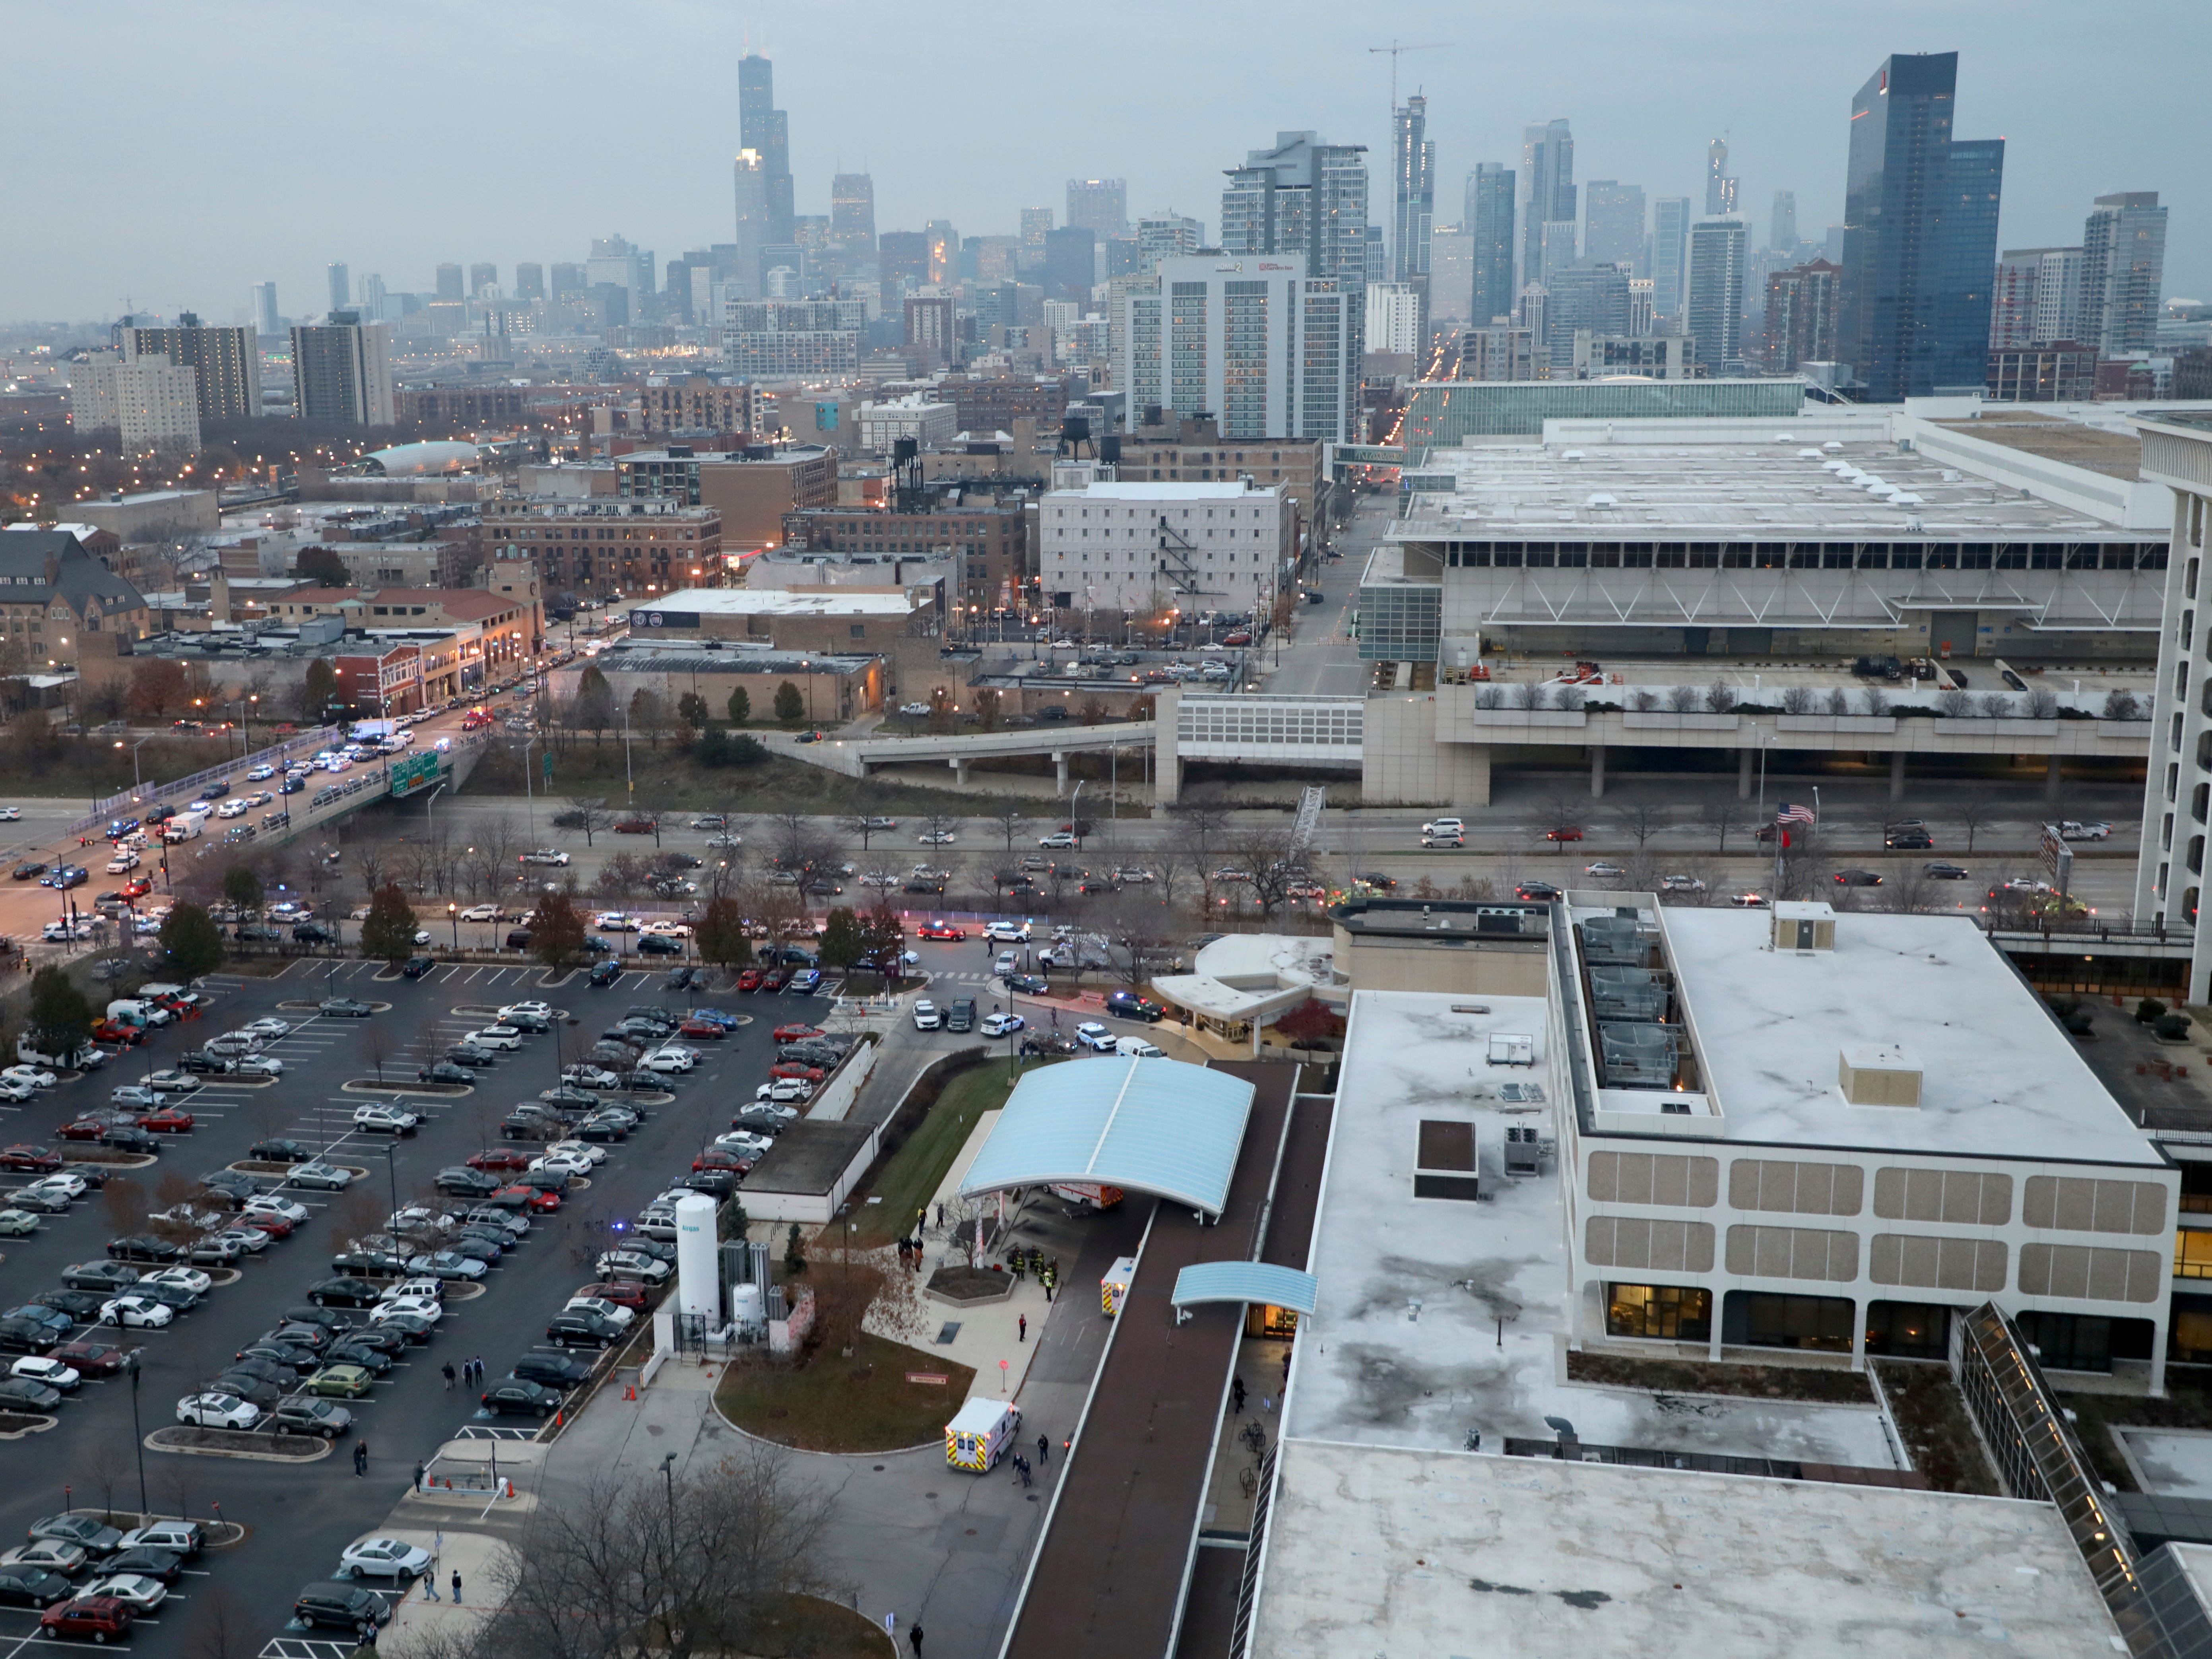 A shooting at Mercy Hospital in Chicago  on Nov. 18, 2018, has wounded multiple people, including a suspect and a police officer, authorities said.